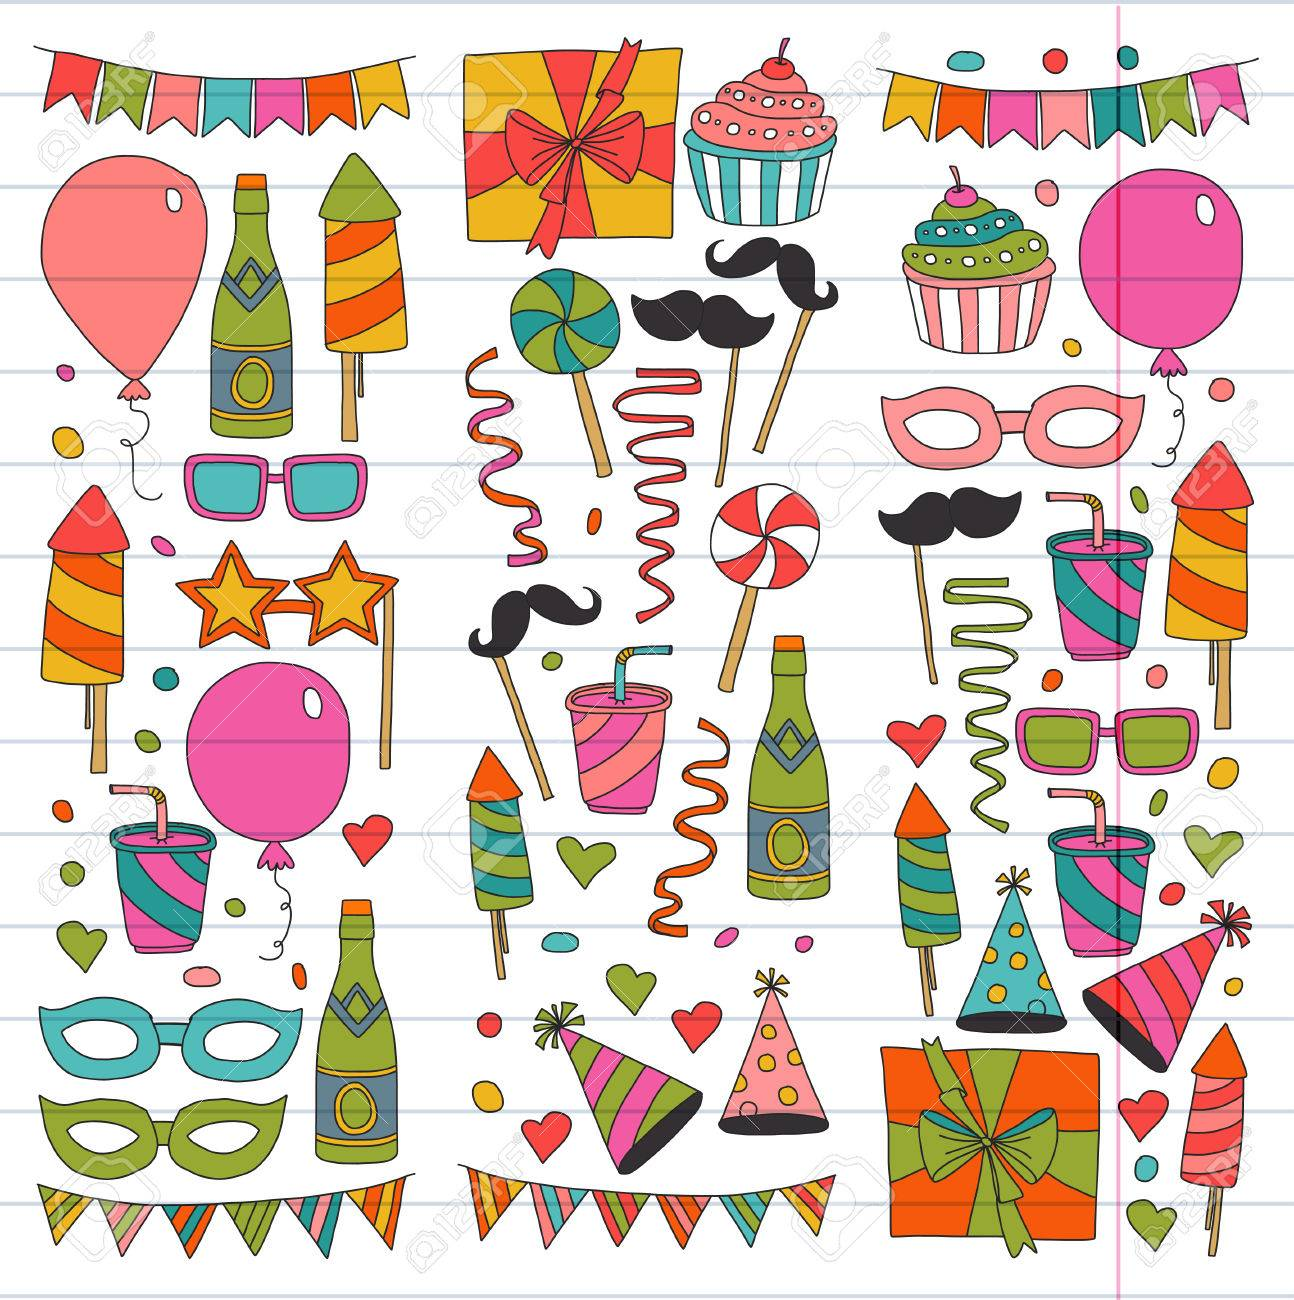 birthday party drawing for kids ; 85697030-kids-party-children-drawing-birthday-party-with-balloons-mask-gifts-food-cupcakes-doodle-set-with-ve